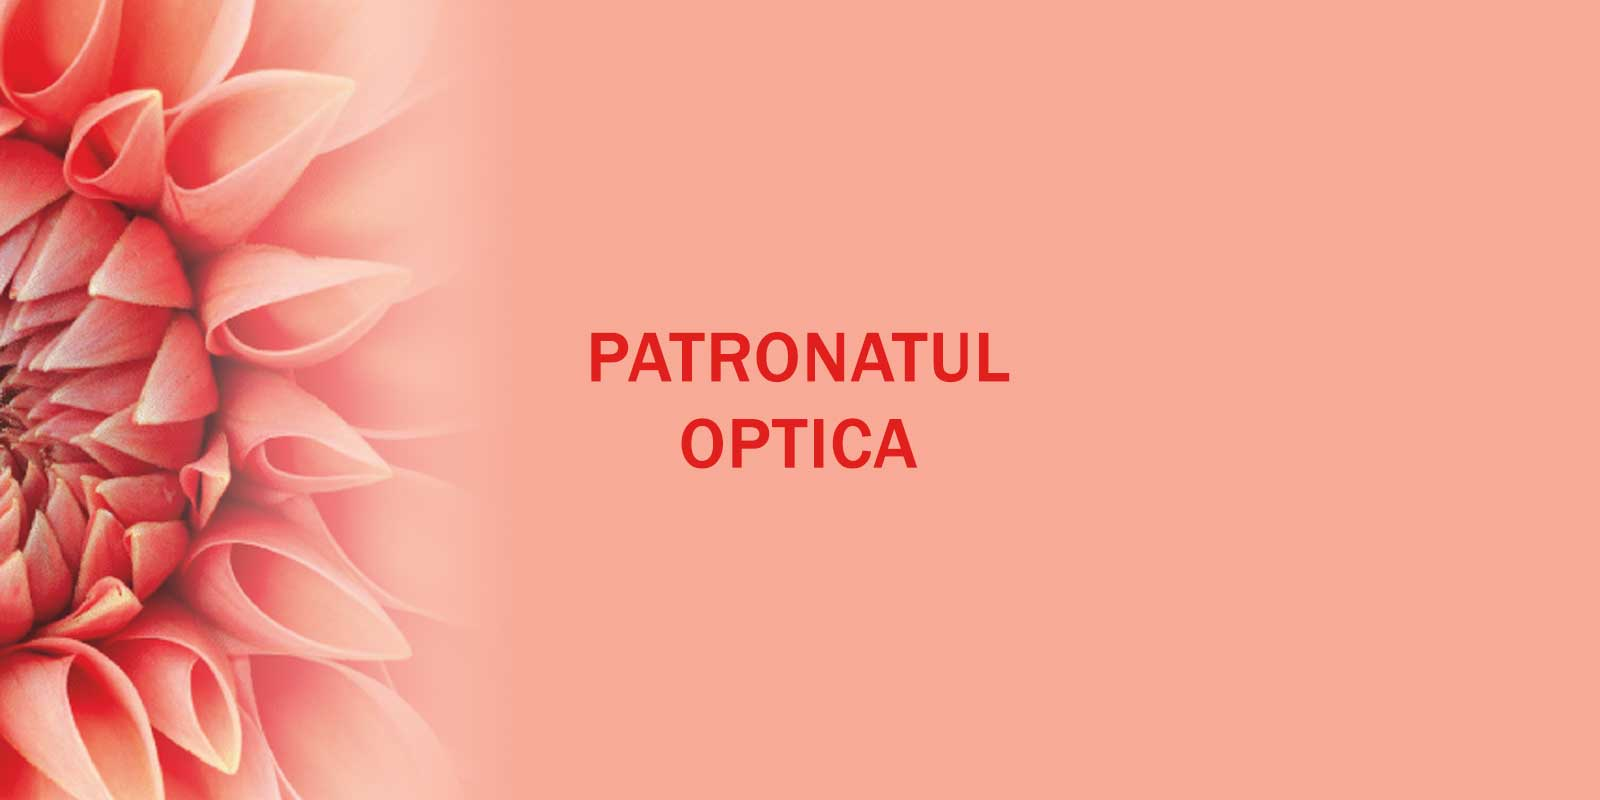 Patronatul Optica